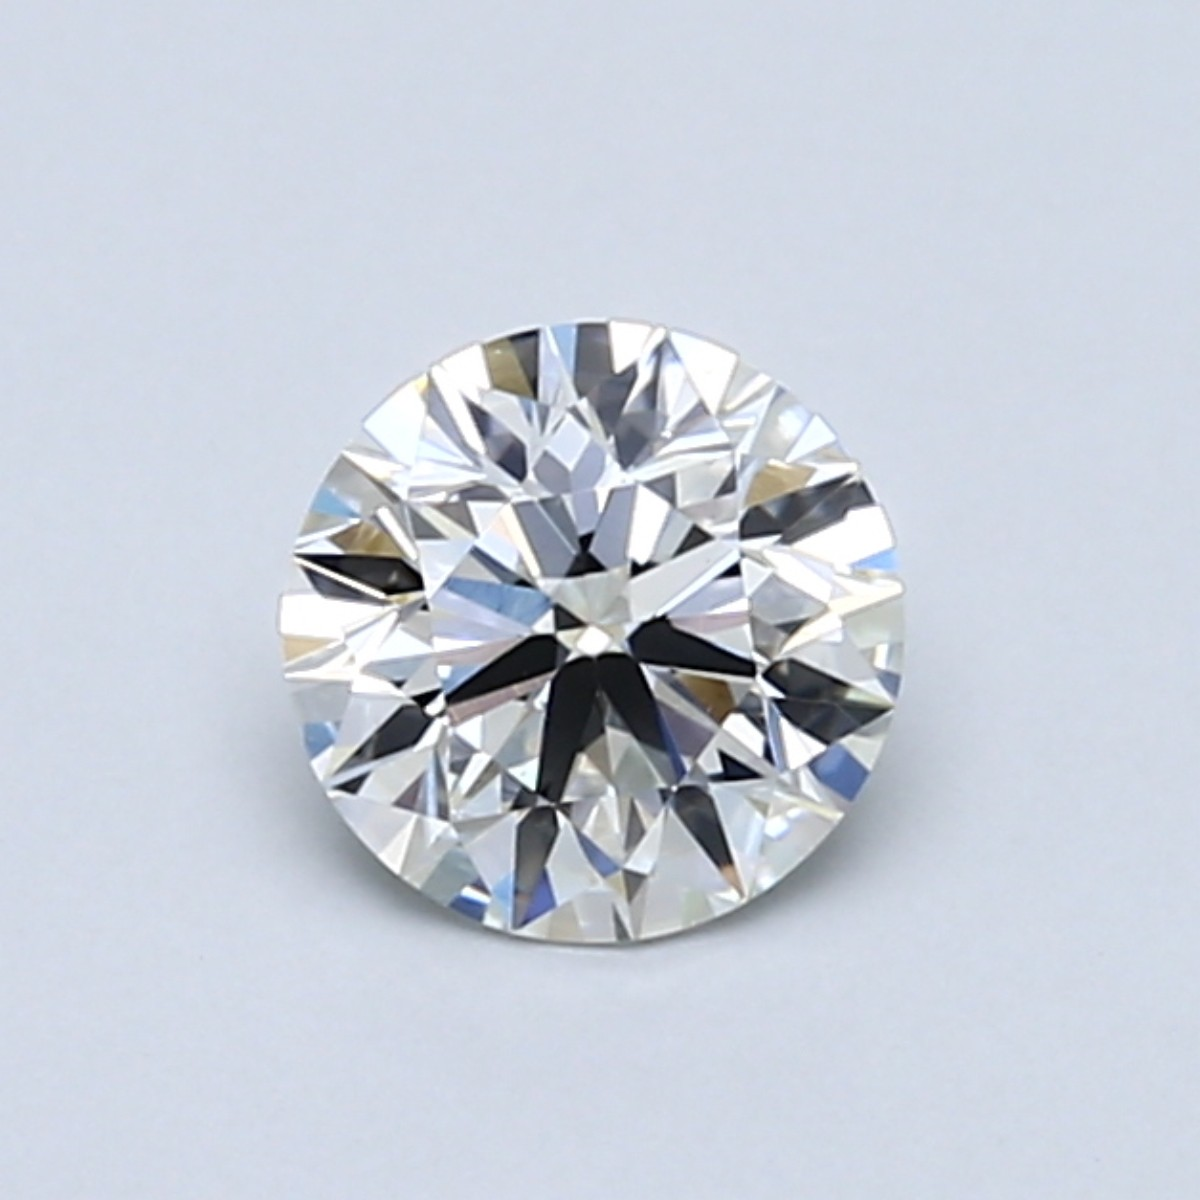 Round 0.7 Carat G Color VS2 Clarity For Sale